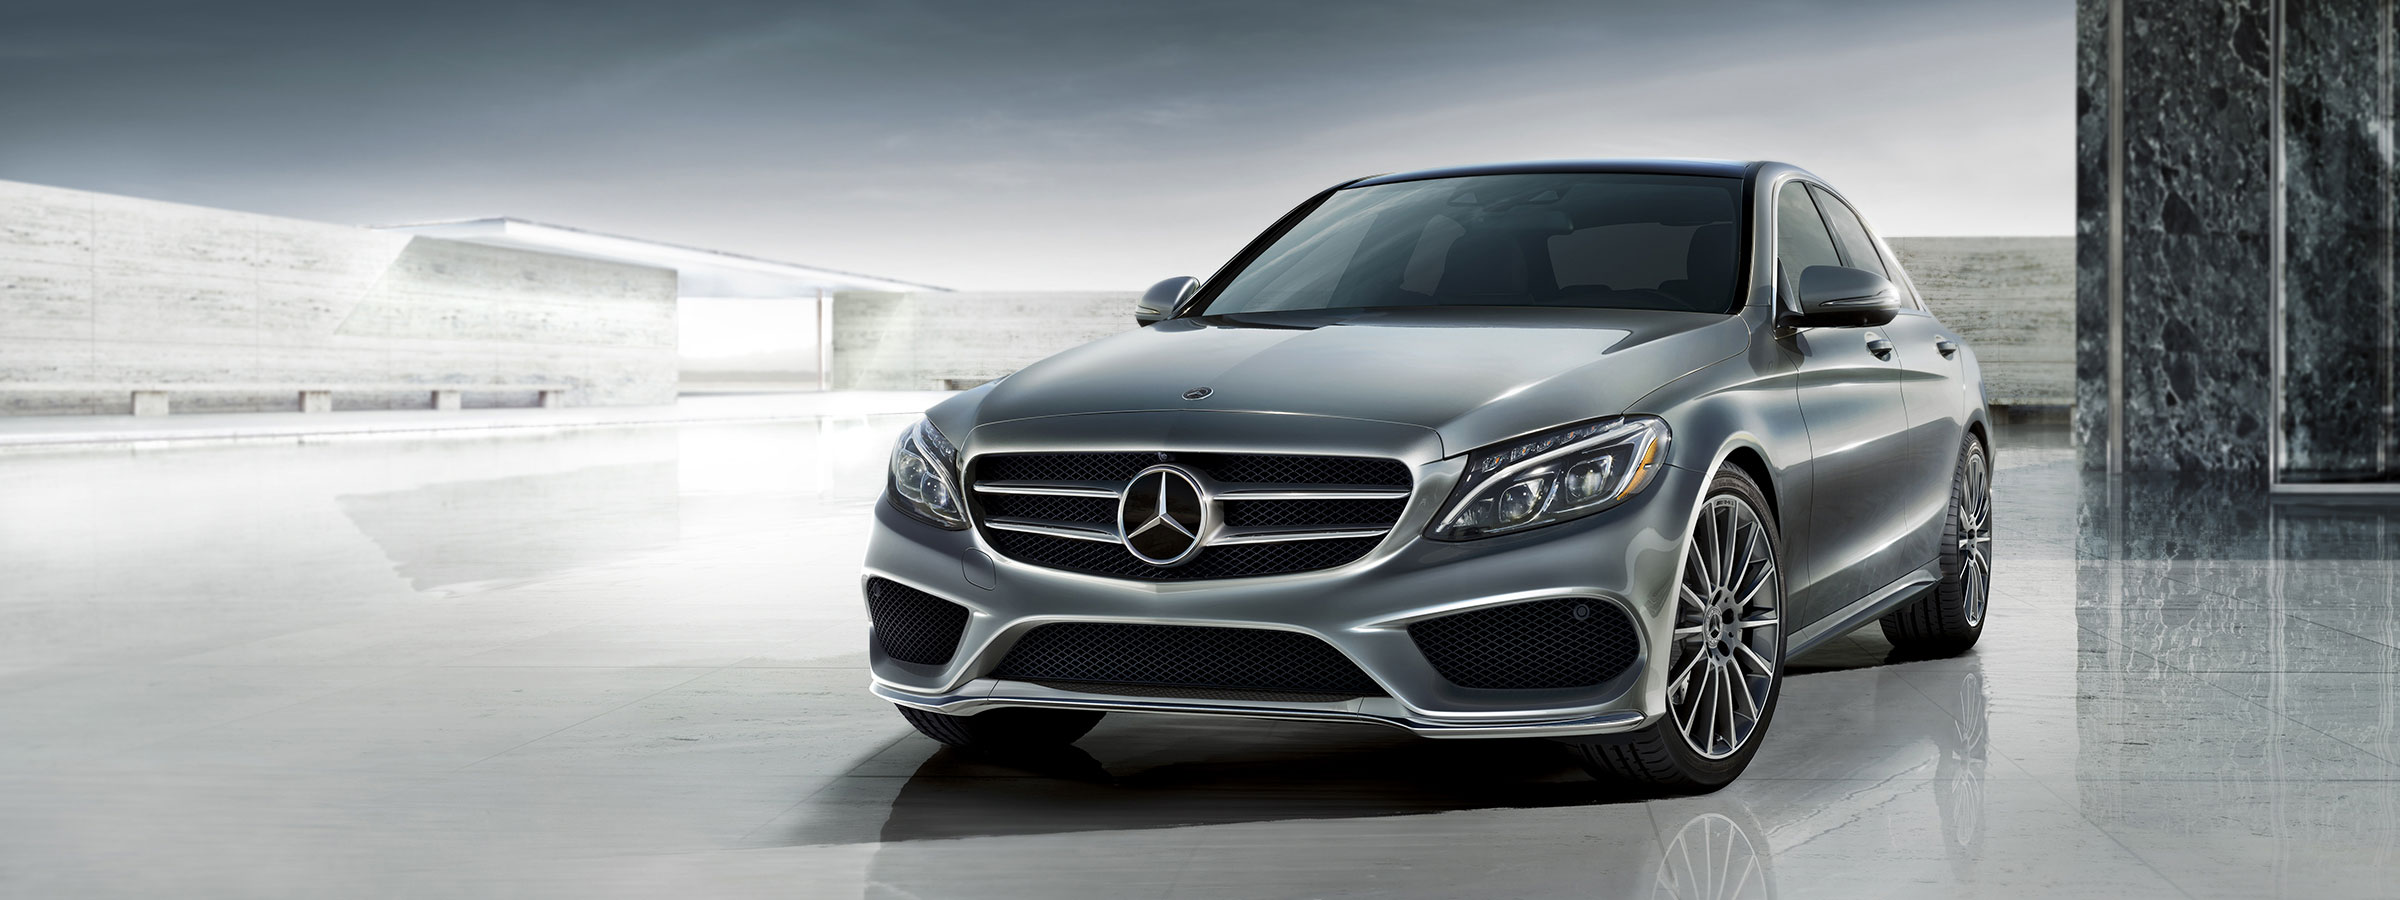 2018 Mercedes C300 New Car Release Date And Review 2018 Amanda Felicia